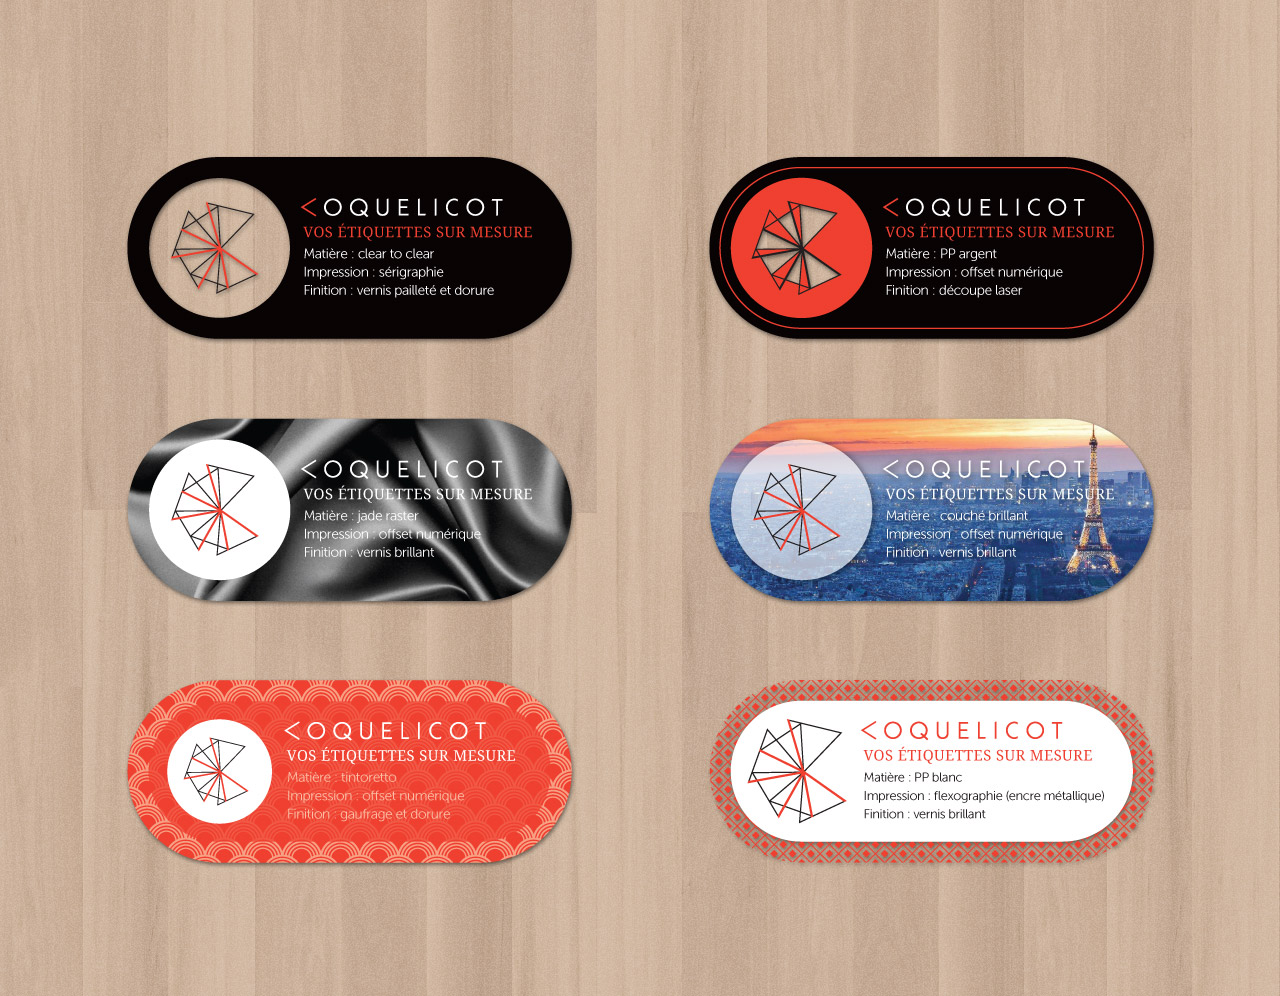 coquelicot-etiquettes-adhesives-1-creation-communication-caconcept-alexis-cretin-graphiste